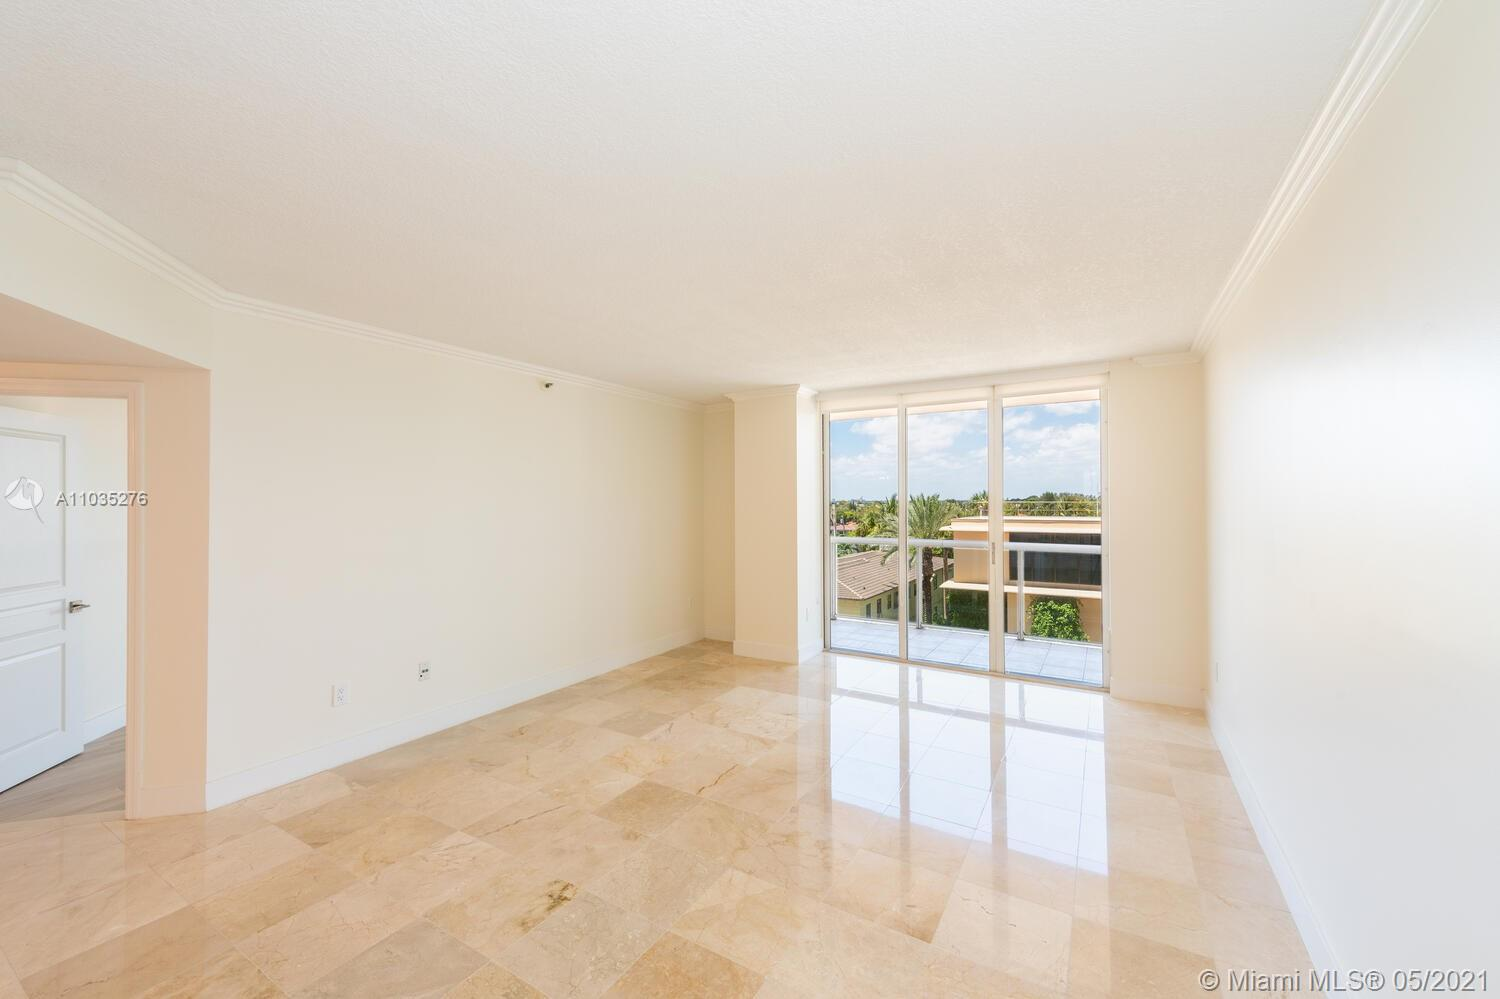 Photo of 8925 Collins Ave #4F, Surfside, Florida, 33154 - Virtually staged dining area.